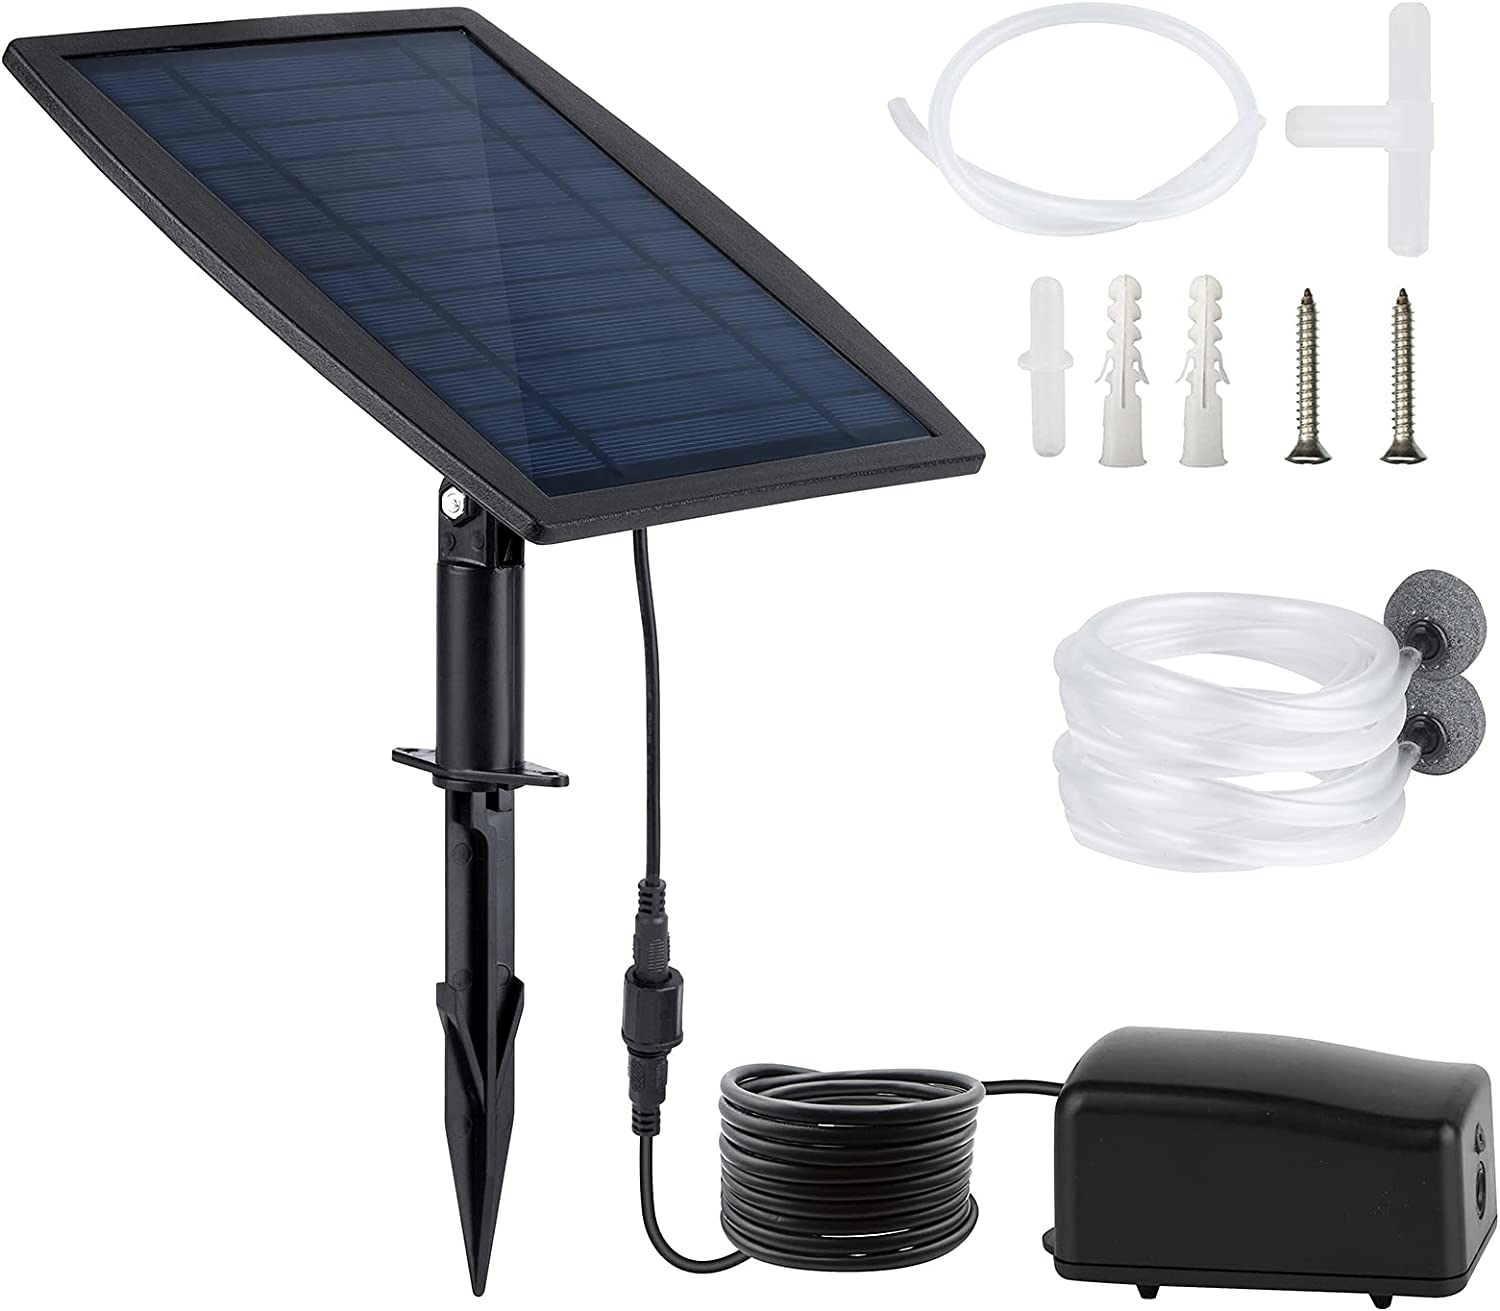 2.5W Solar Oxygen Air Pump Kit Battery Backup 3 Modes Solar Powered Fountain Watering Pump with Oxygen Hoses and Air Bubble Stone for Oxygenator Hydroponics Fish Tank Garden Pool Aquarium Fishing Pond